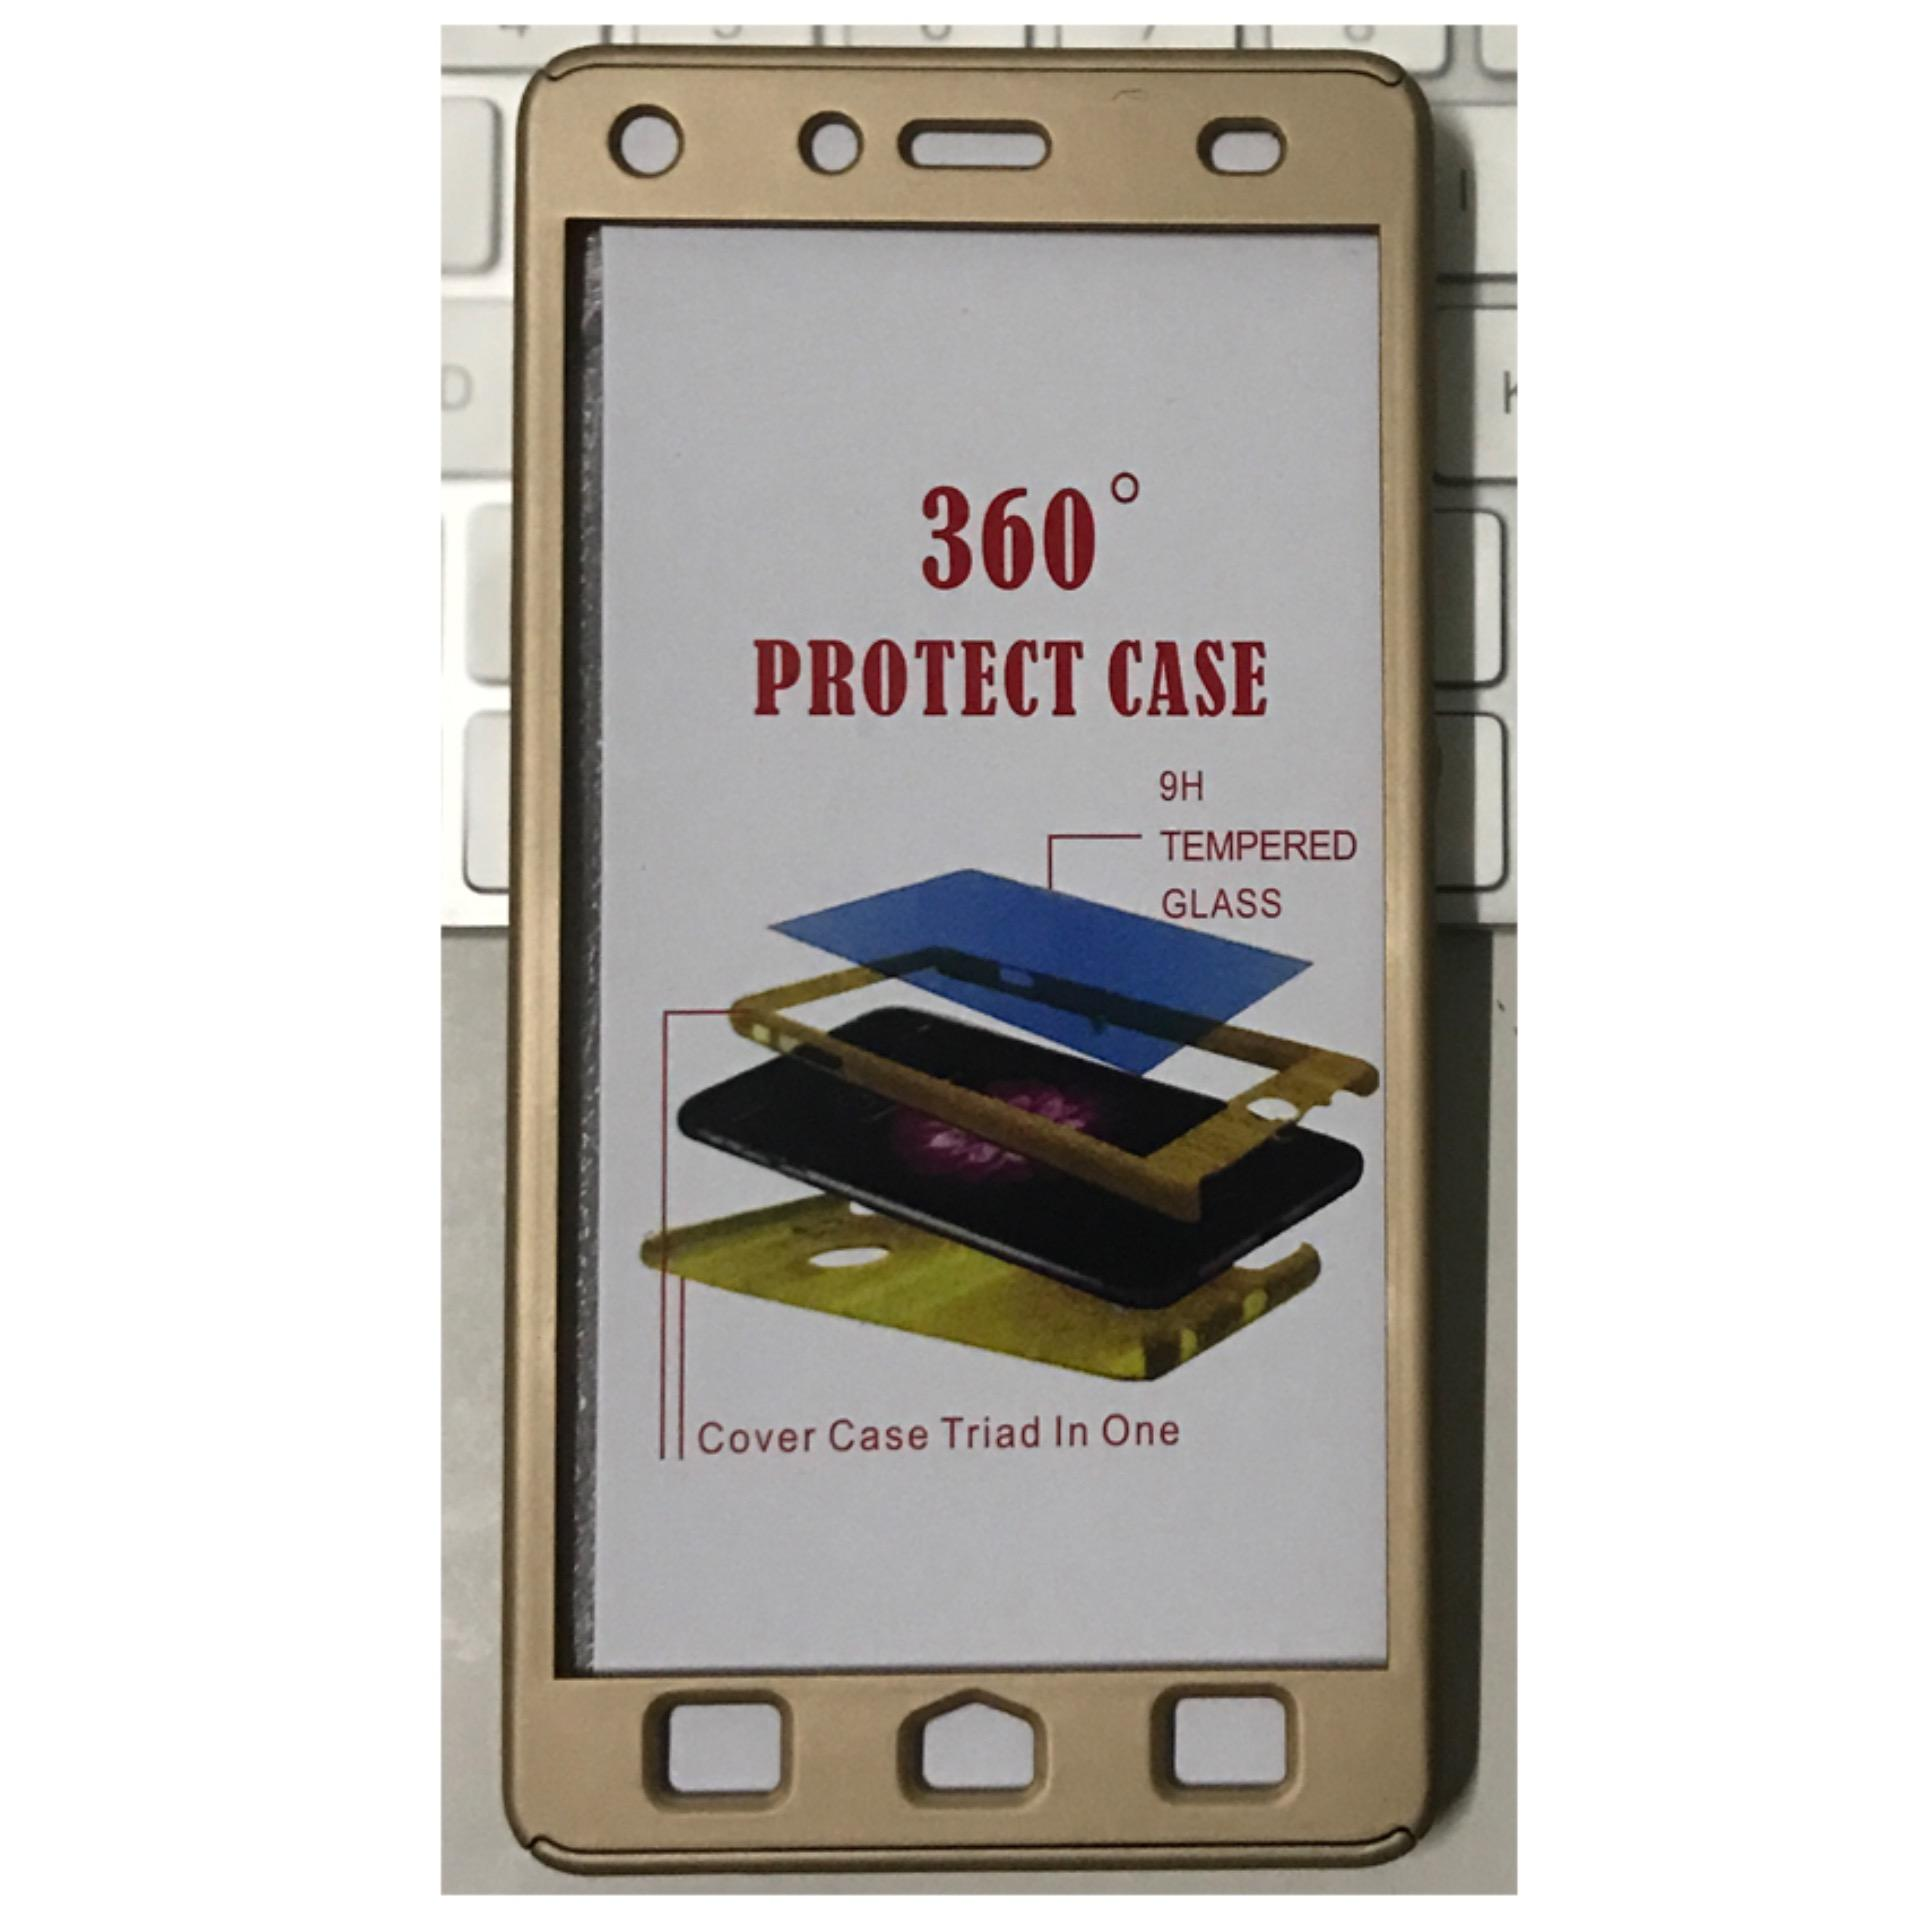 iCase Armor Protector 360 Degree Case For Infinix X557 infinix X556 Hot 4 .